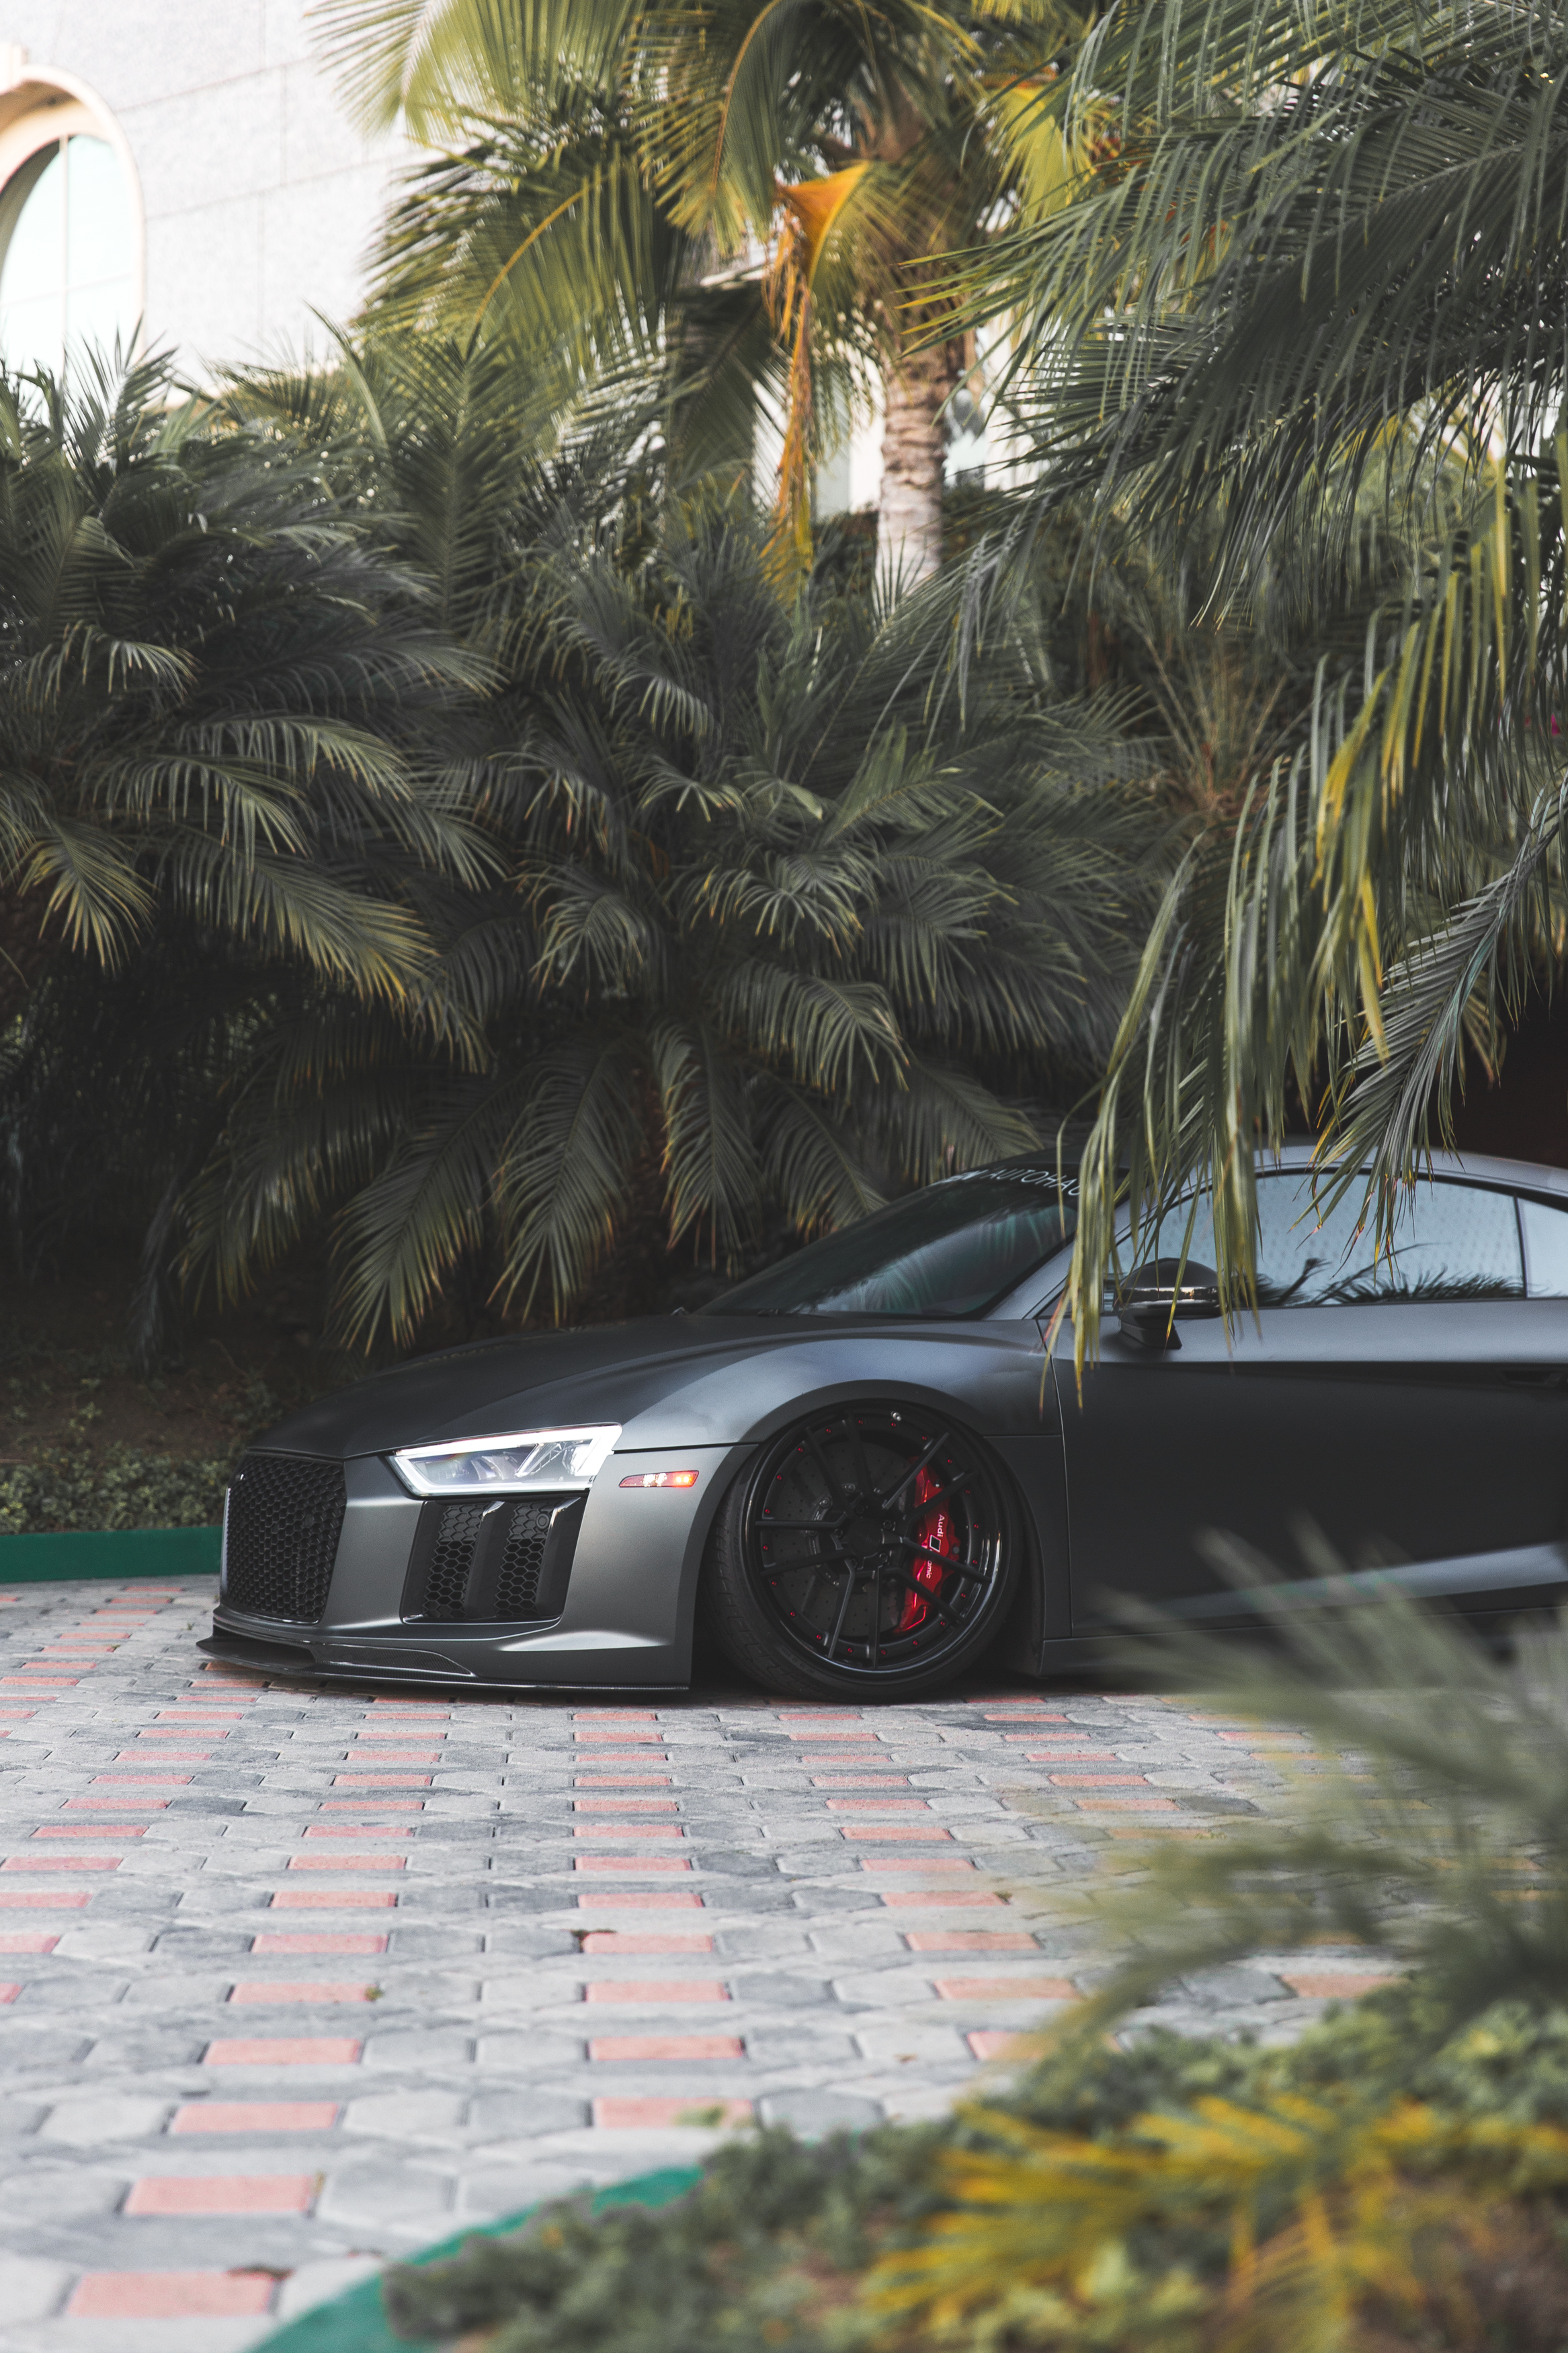 Stay_Driven_Page_R8_Newport-14.jpg